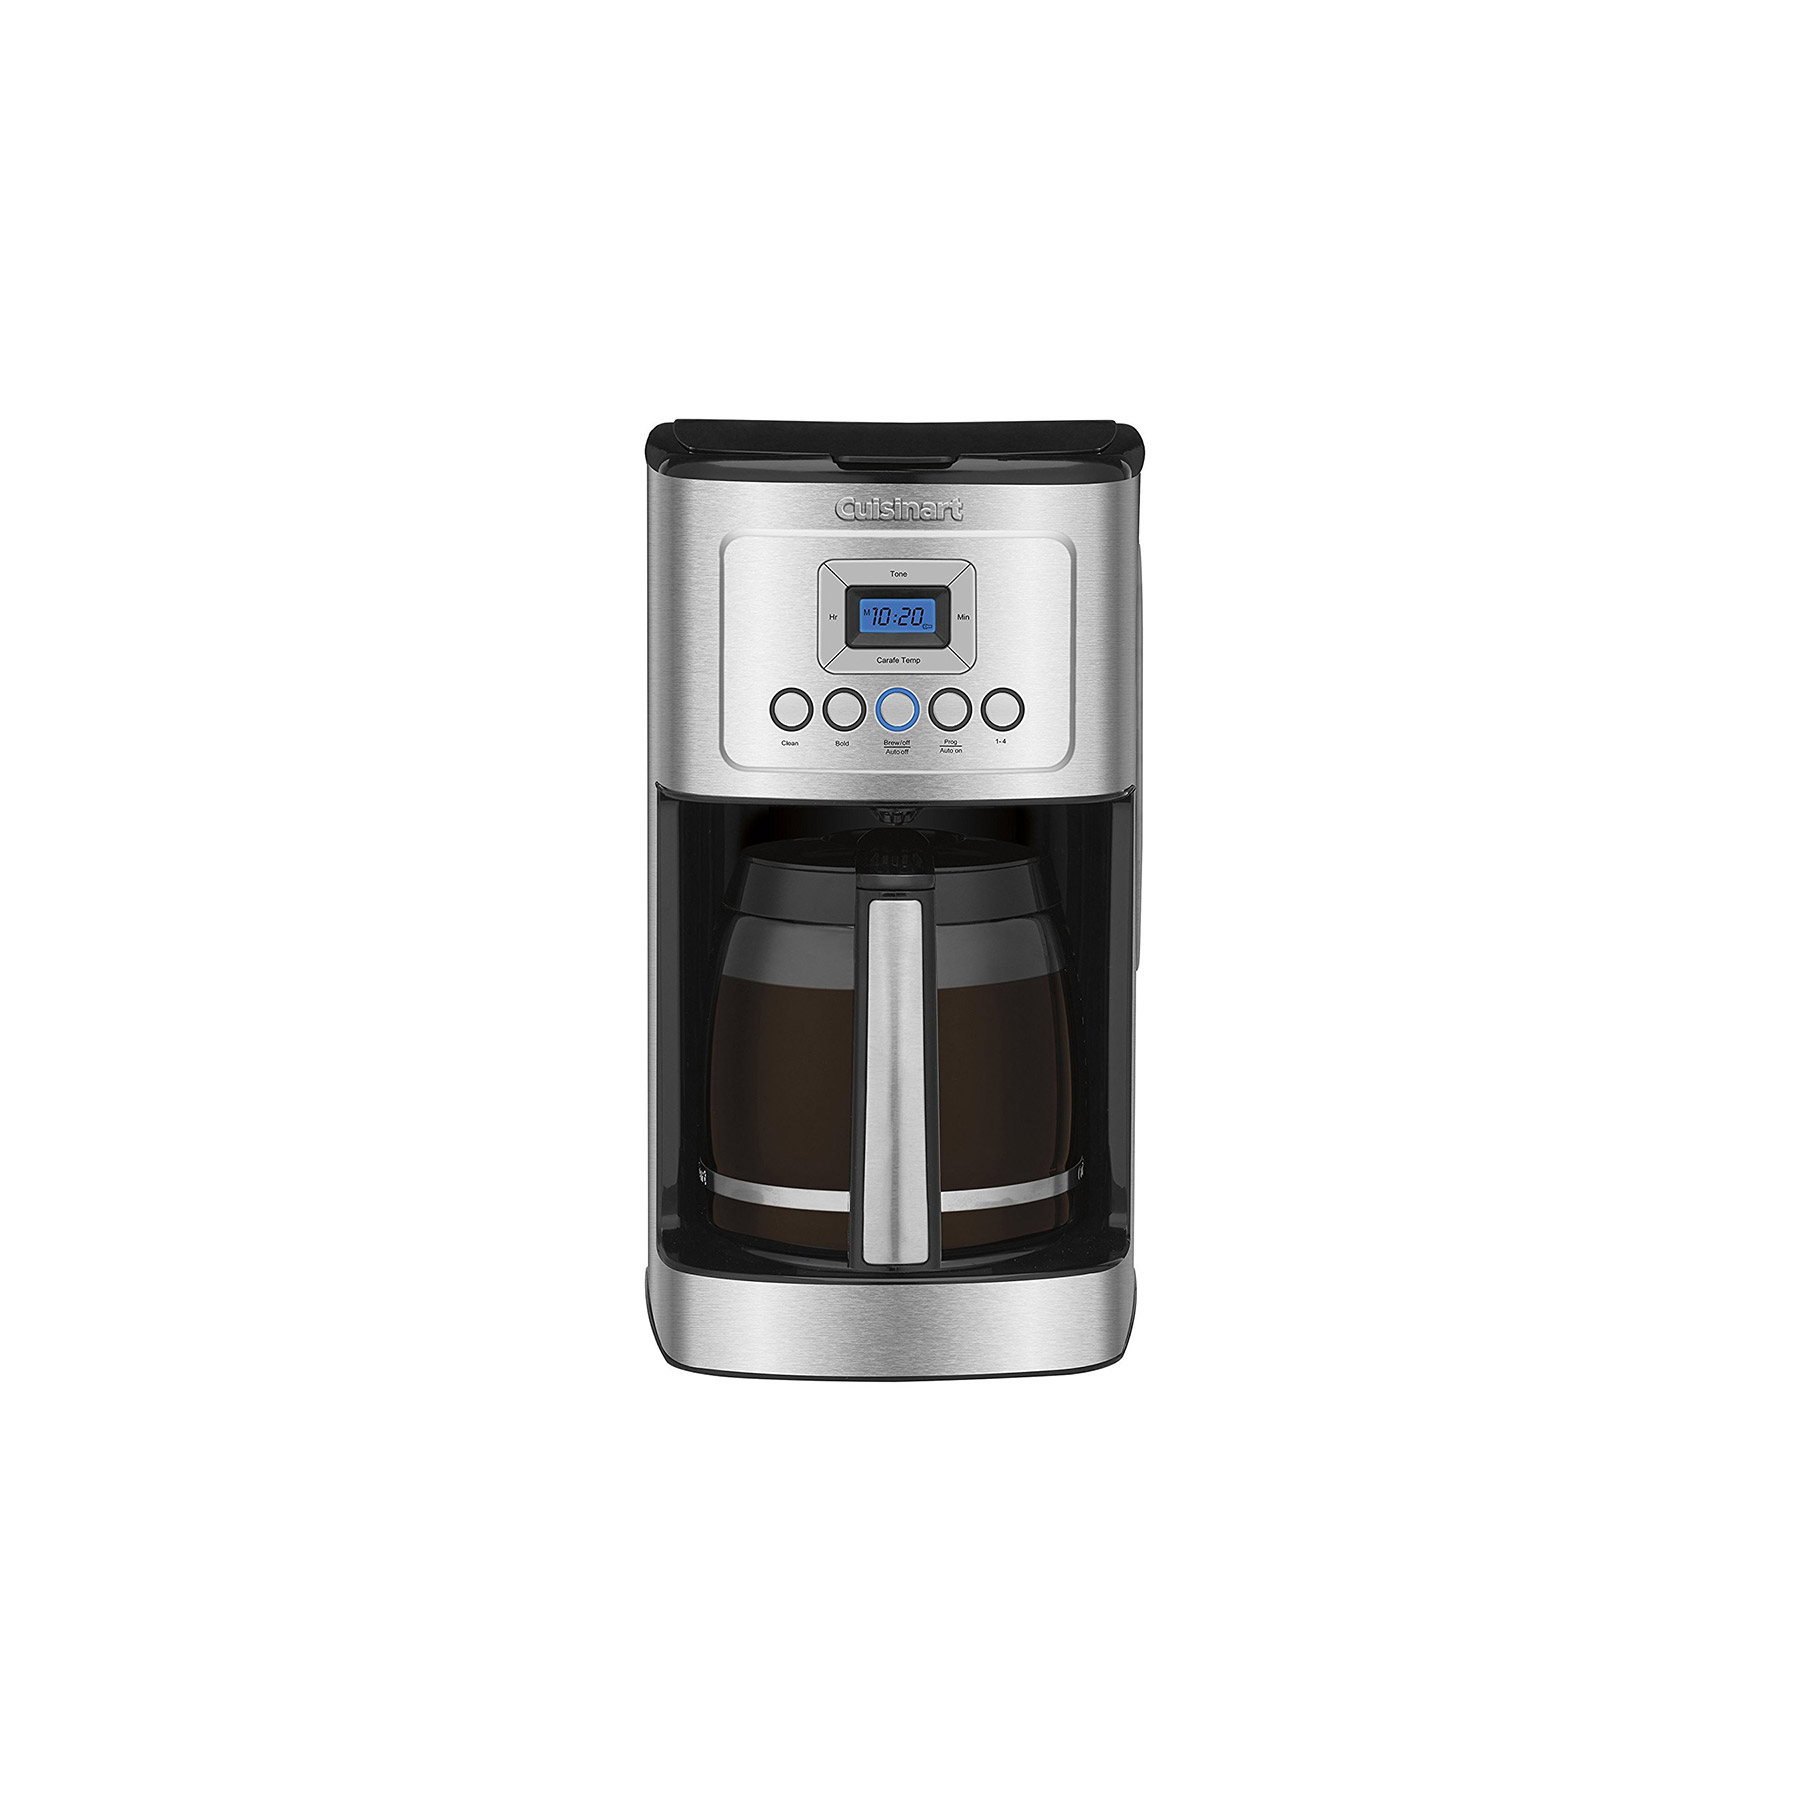 Cuisinart DCC-3200 14-Cup Glass Carafe with Stainless Steel Handle Programmable Coffeemaker